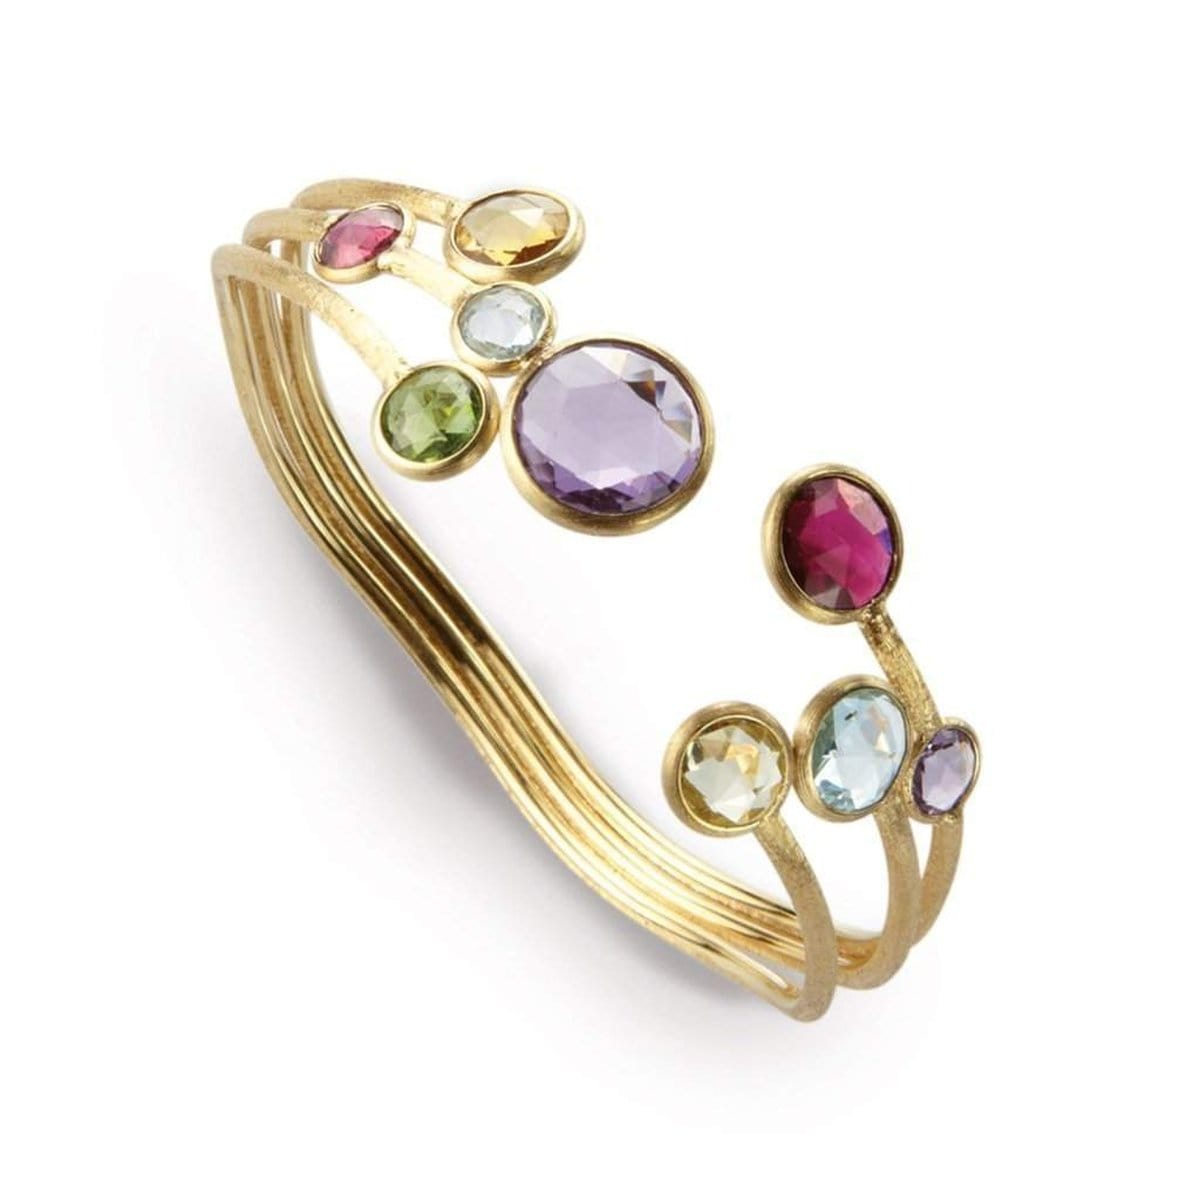 18K Jaipur Mixed Gemstone Bangle - SB51 MIX01 Y